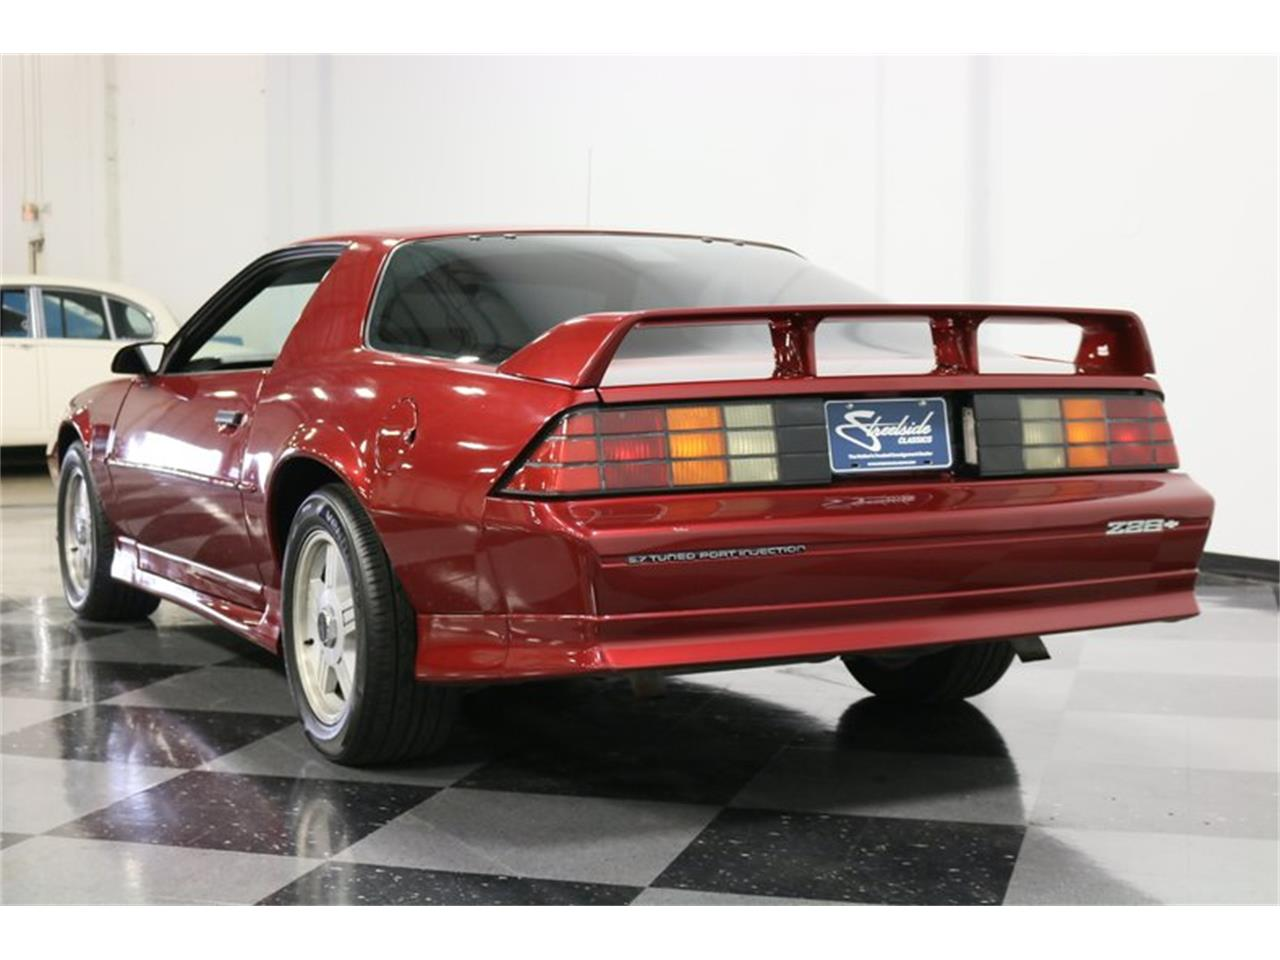 Large Picture of '91 Chevrolet Camaro located in Ft Worth Texas - $11,995.00 Offered by Streetside Classics - Dallas / Fort Worth - PBLJ